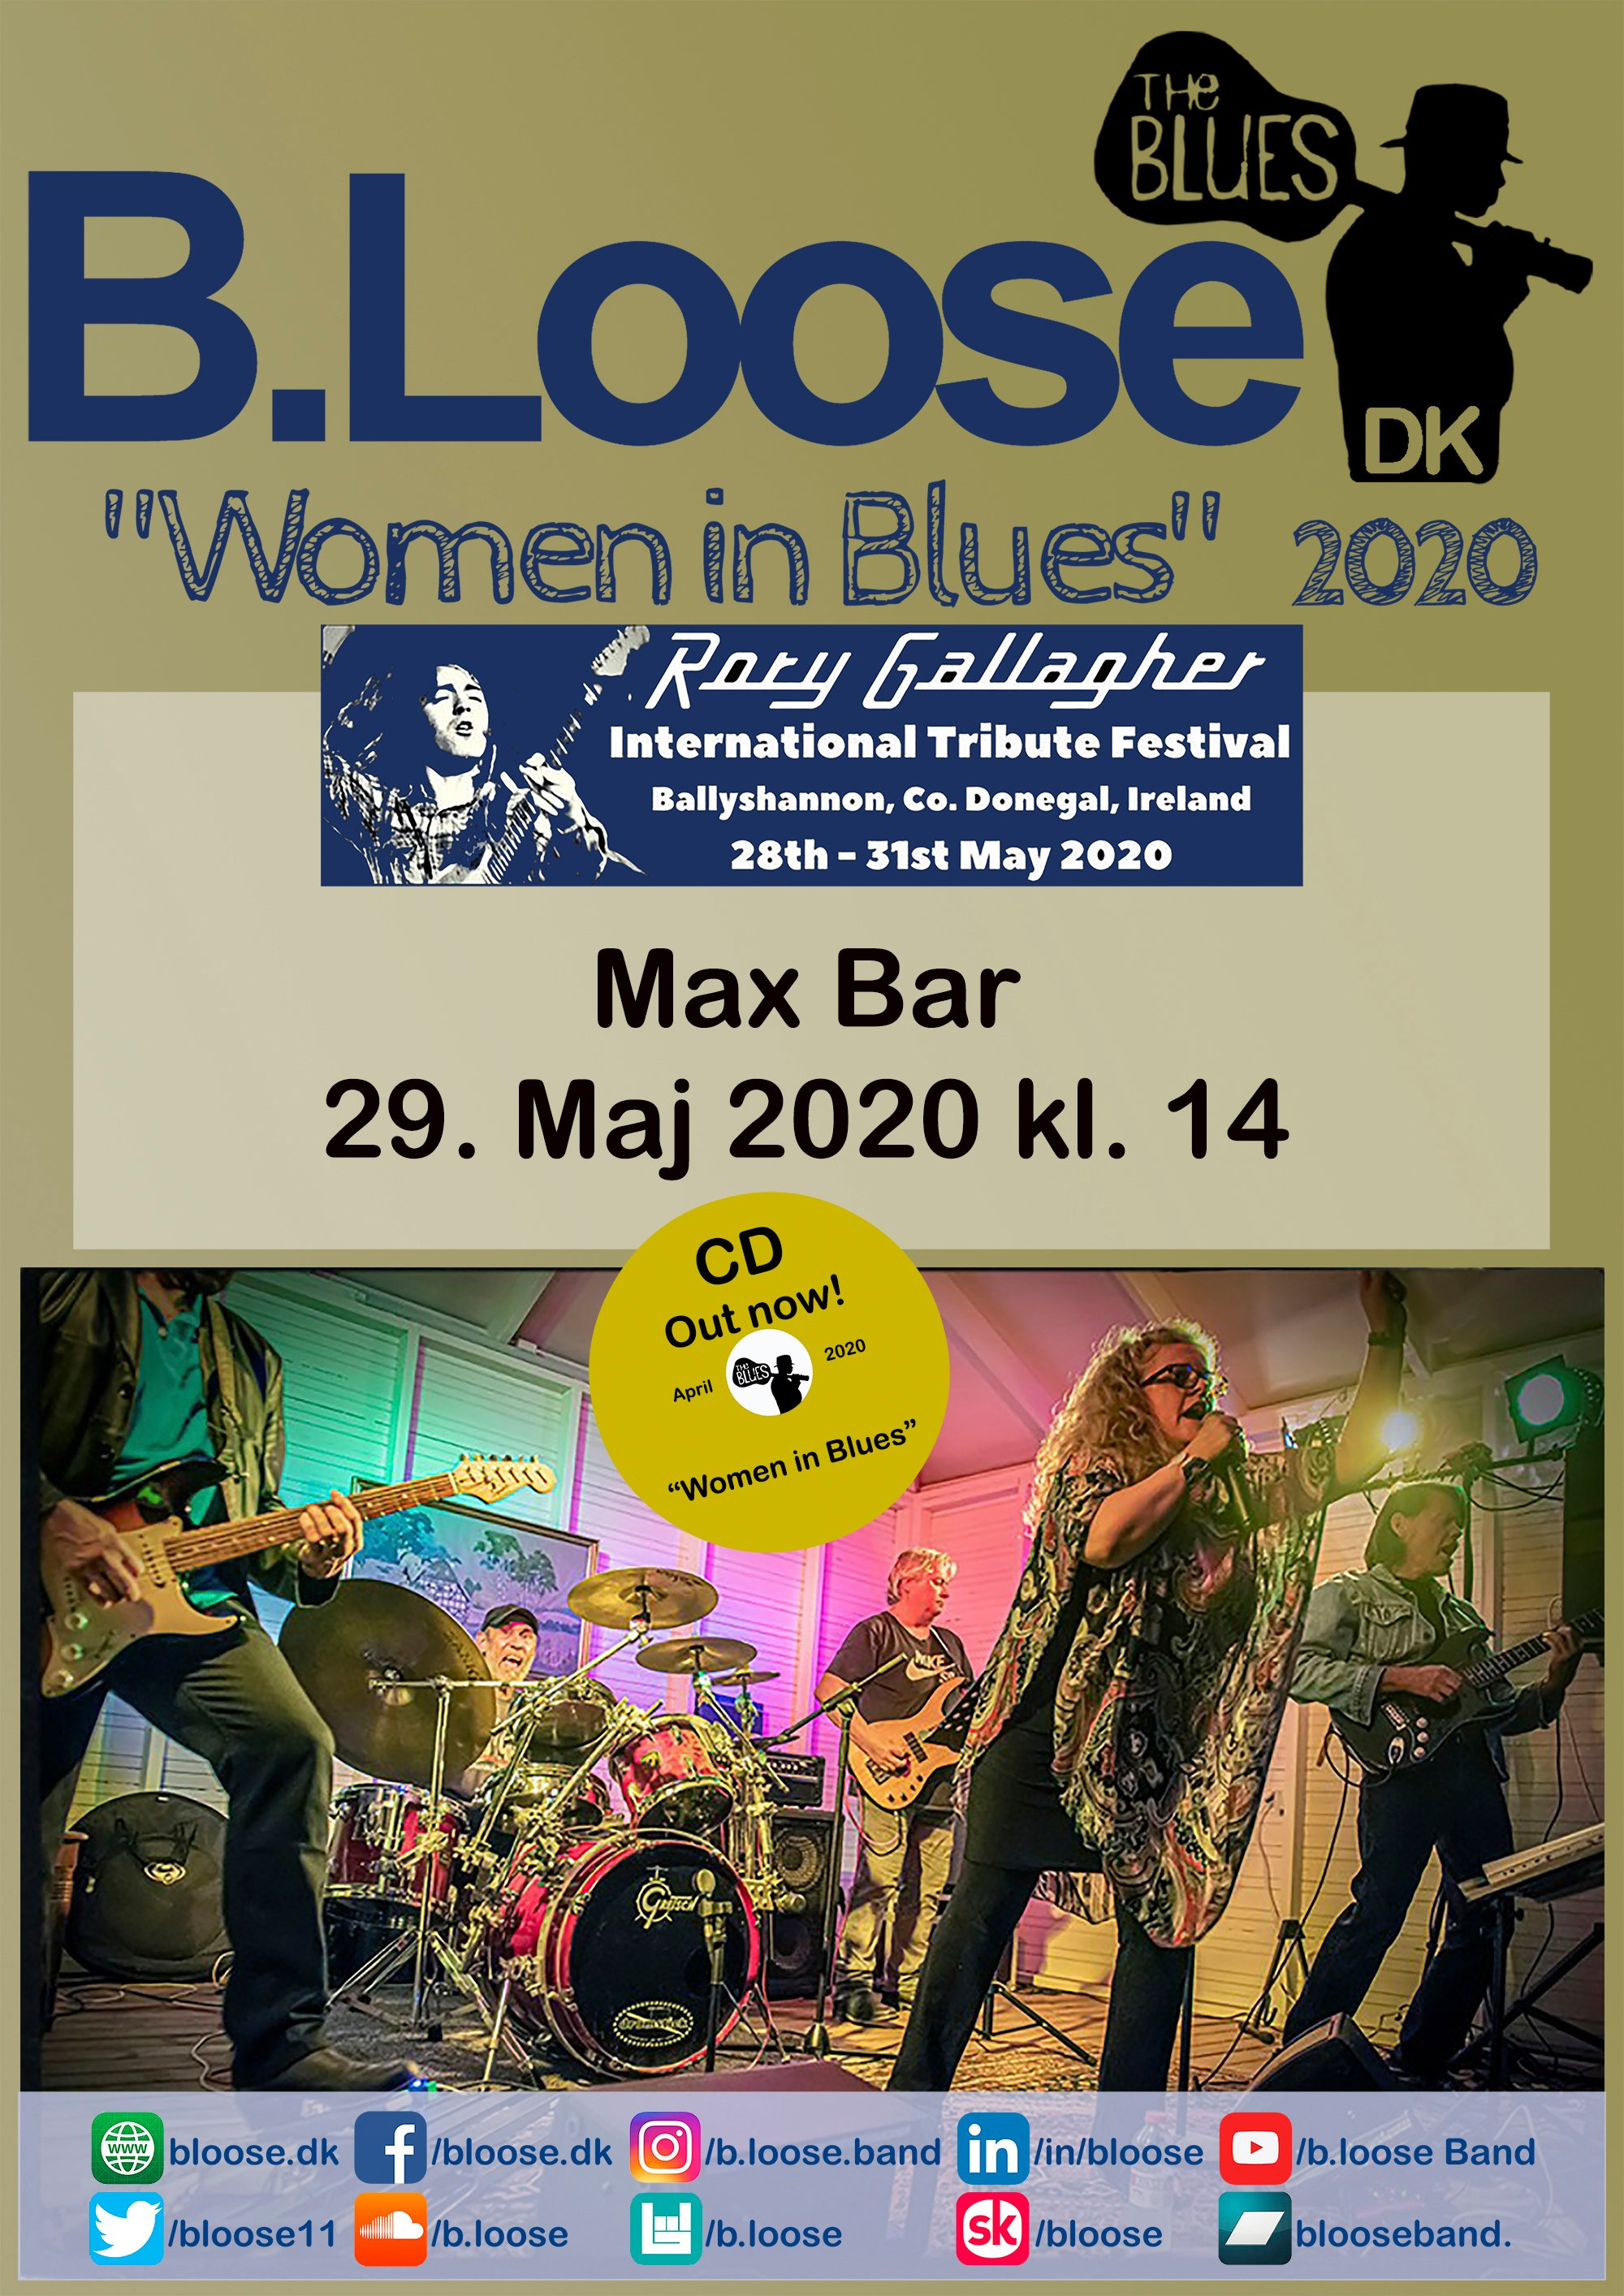 2020.5.29 Max Bar - Rory Gallagher Festival - CD